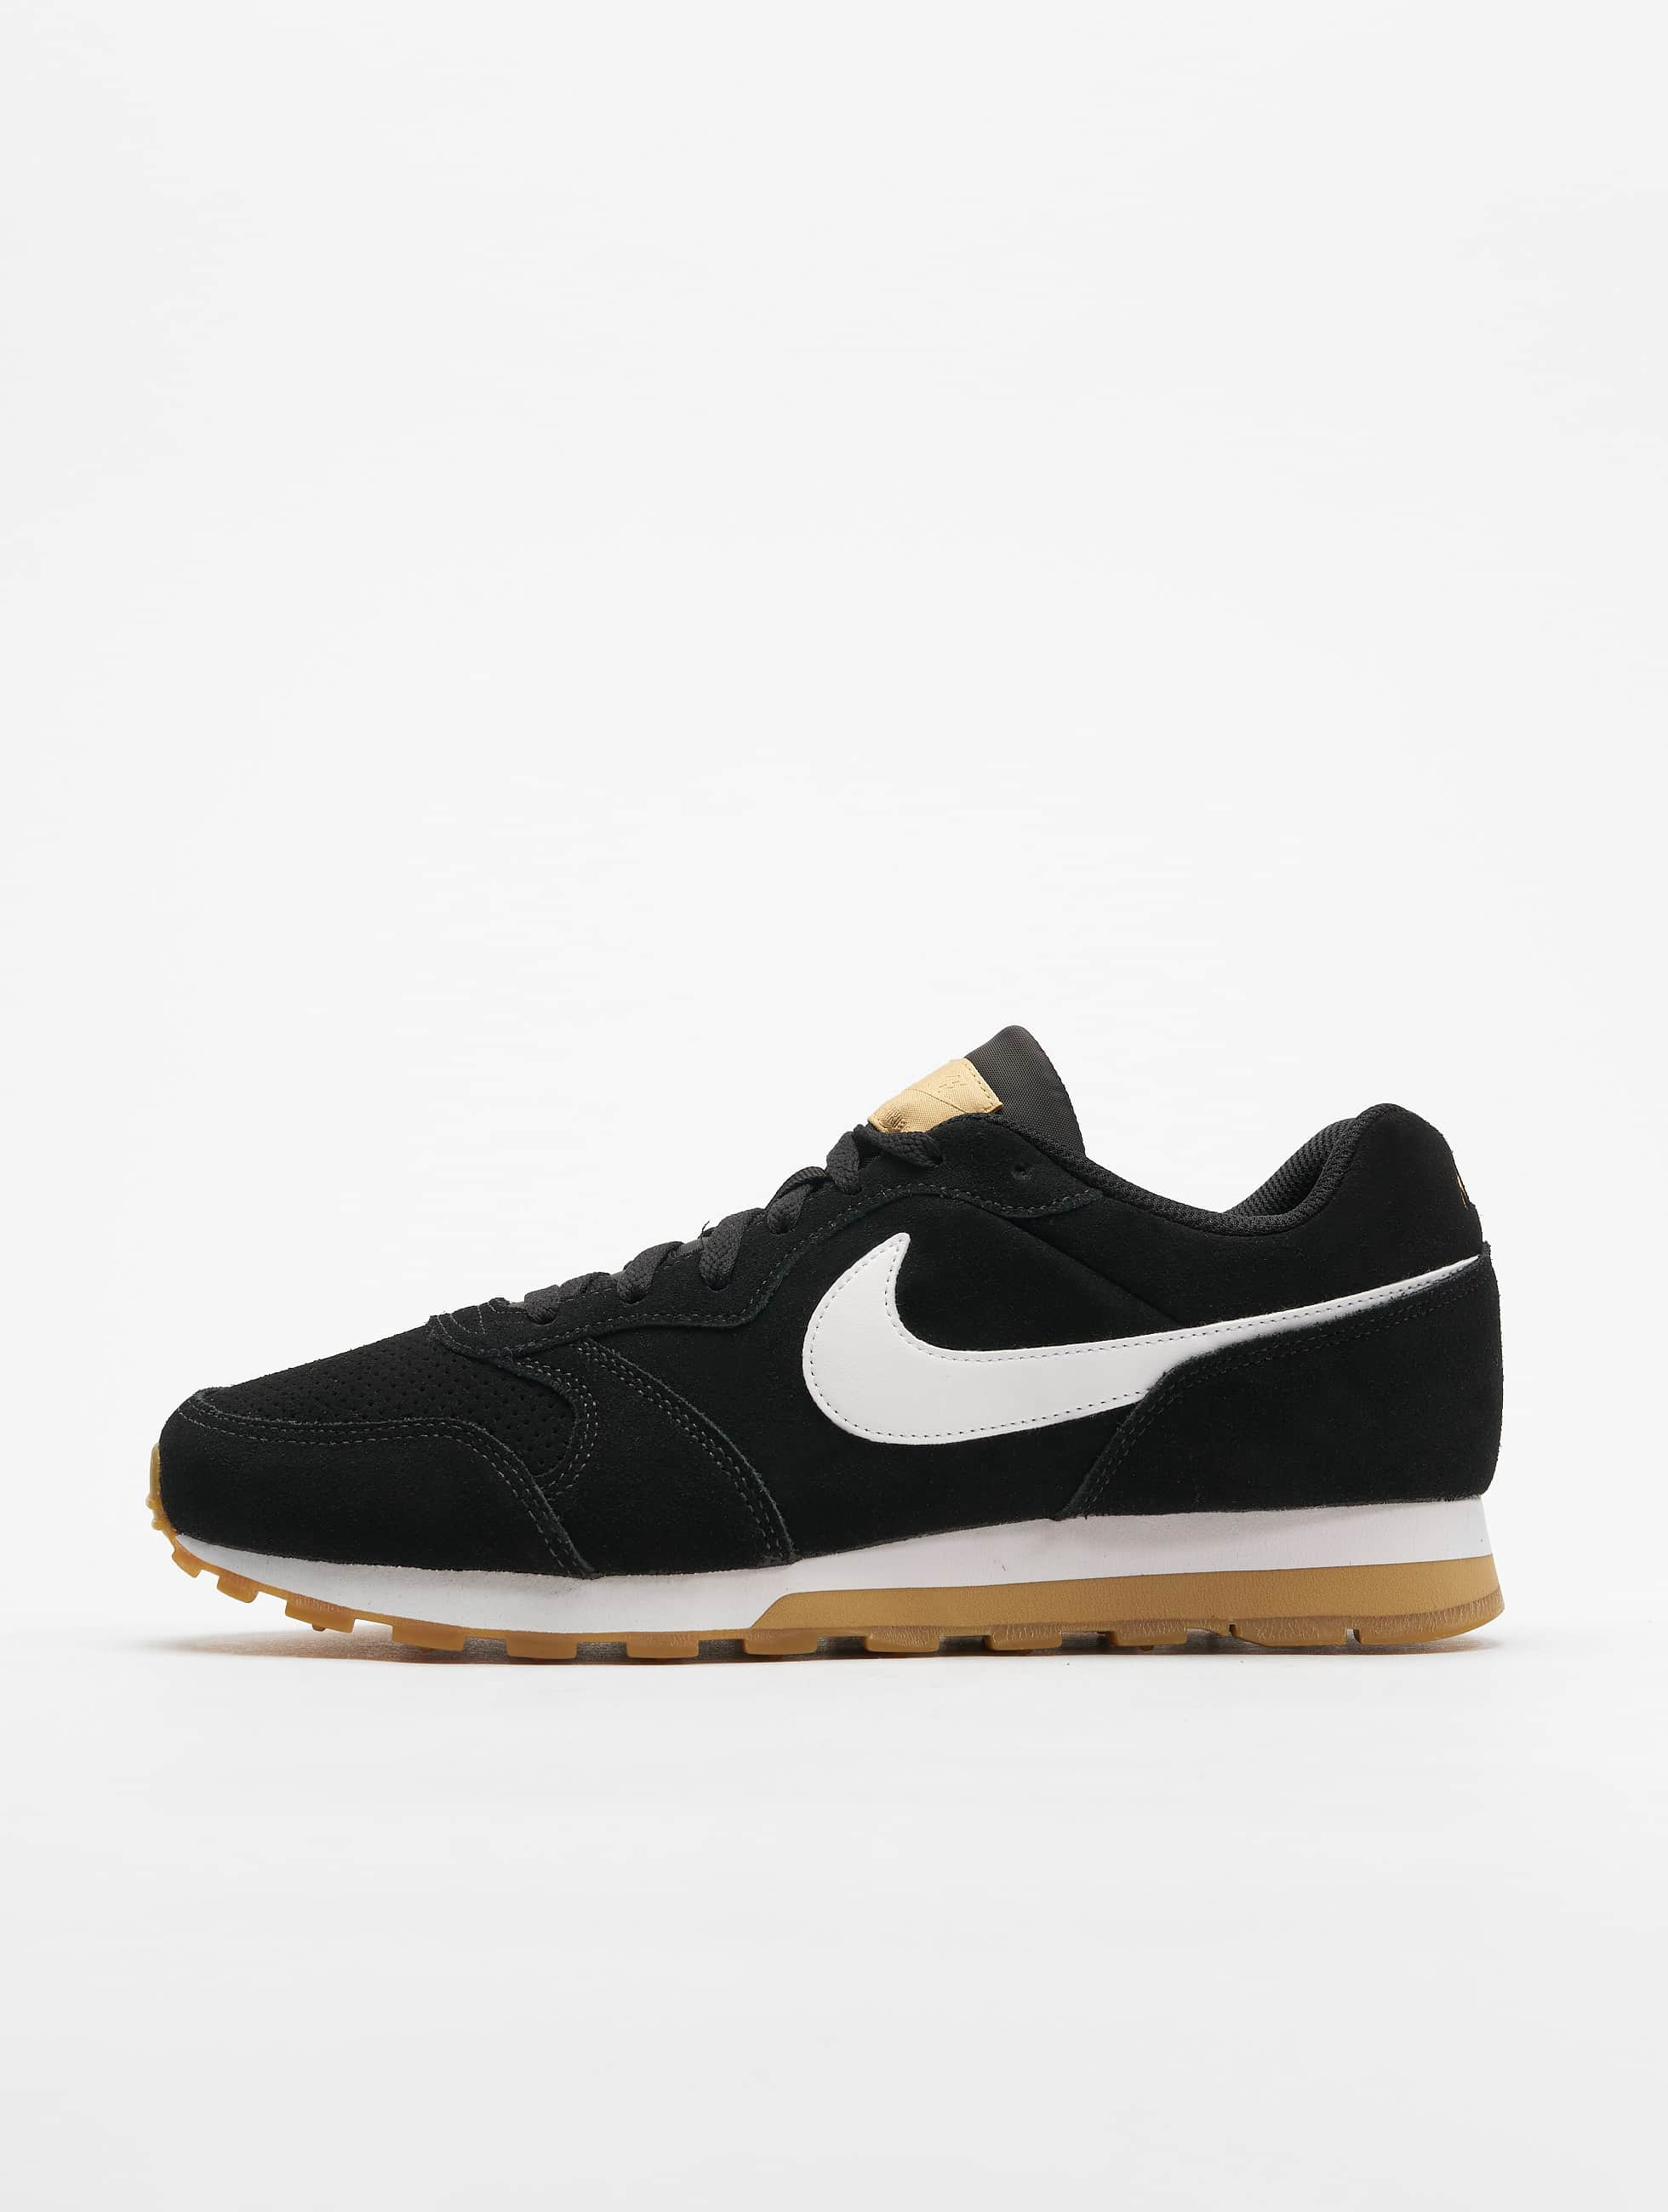 Suede Sneakers Mid Blackwhiteclub goldengum Brown Nike Runner 2 Light yvm0ON8nw